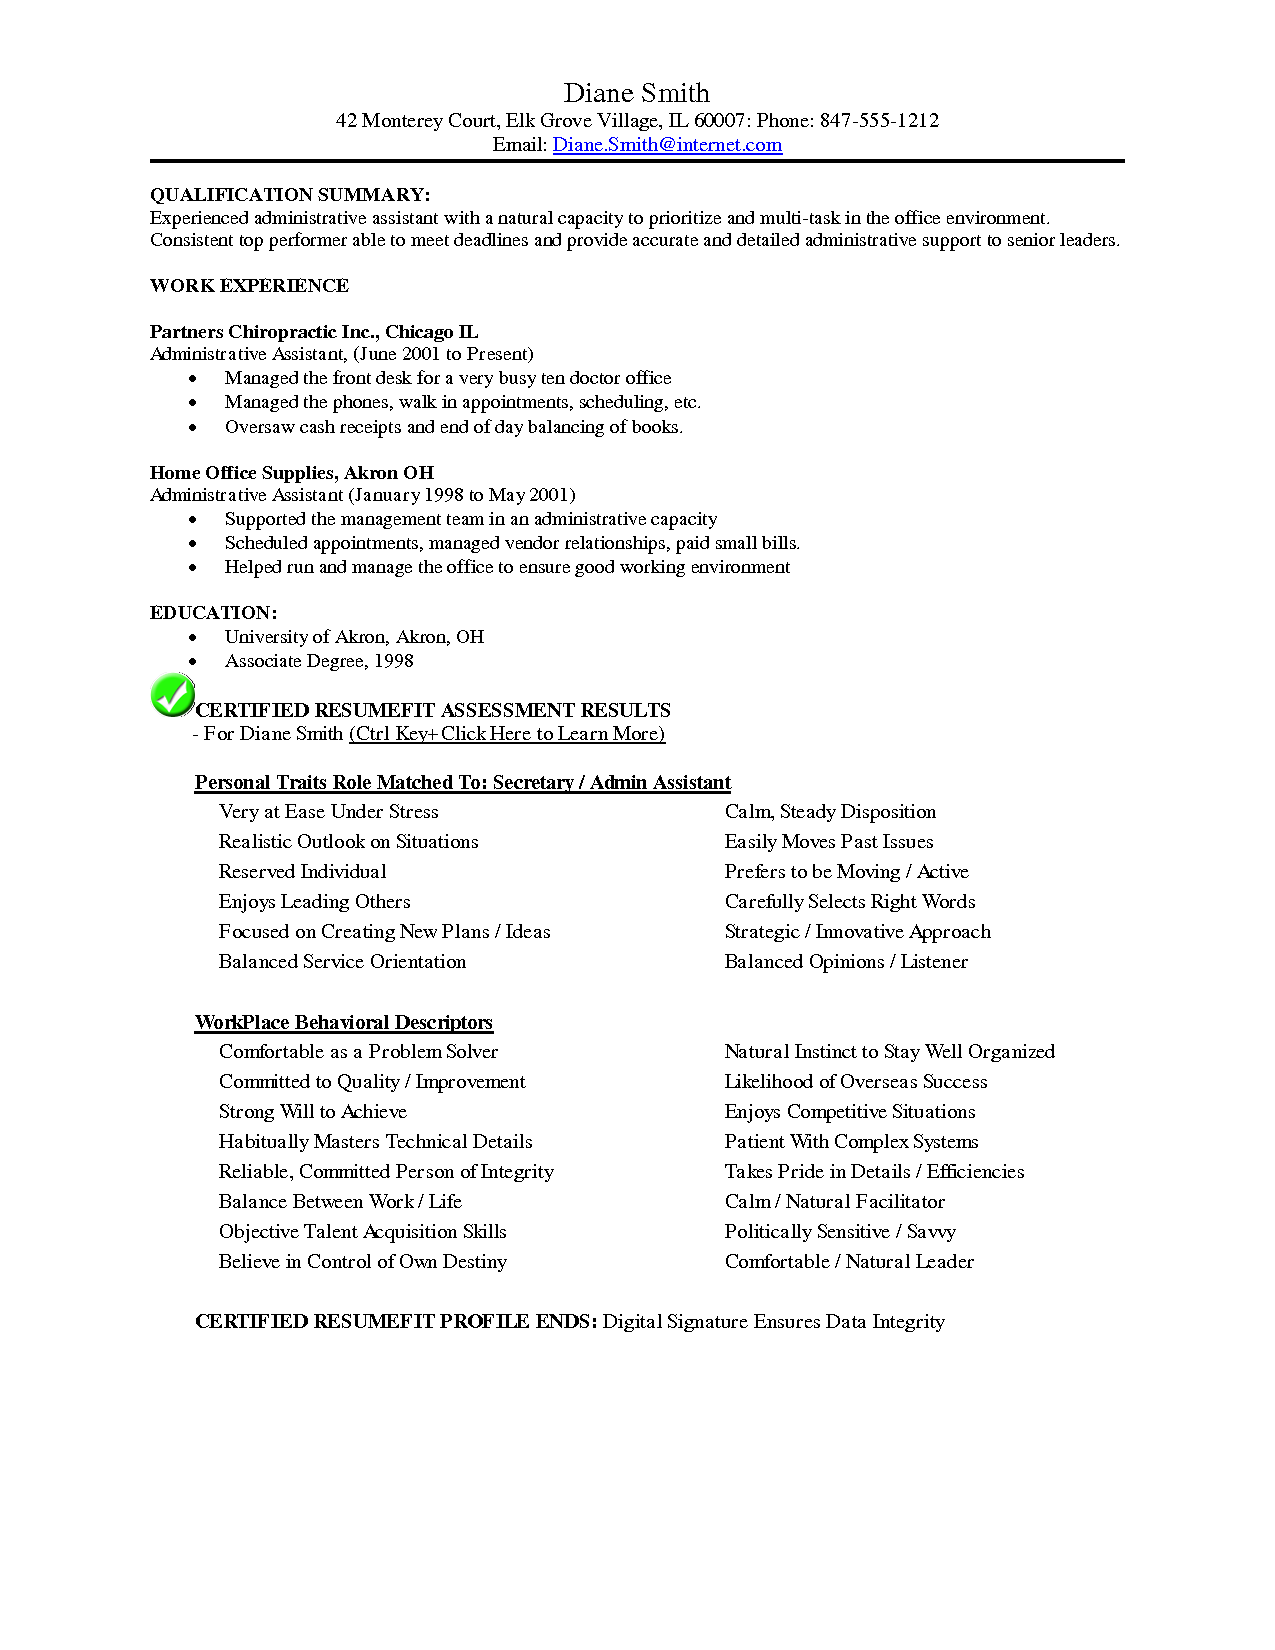 Free Examples Of Resumes Chiropractic Resume Example  Resumes  Pinterest  Resume